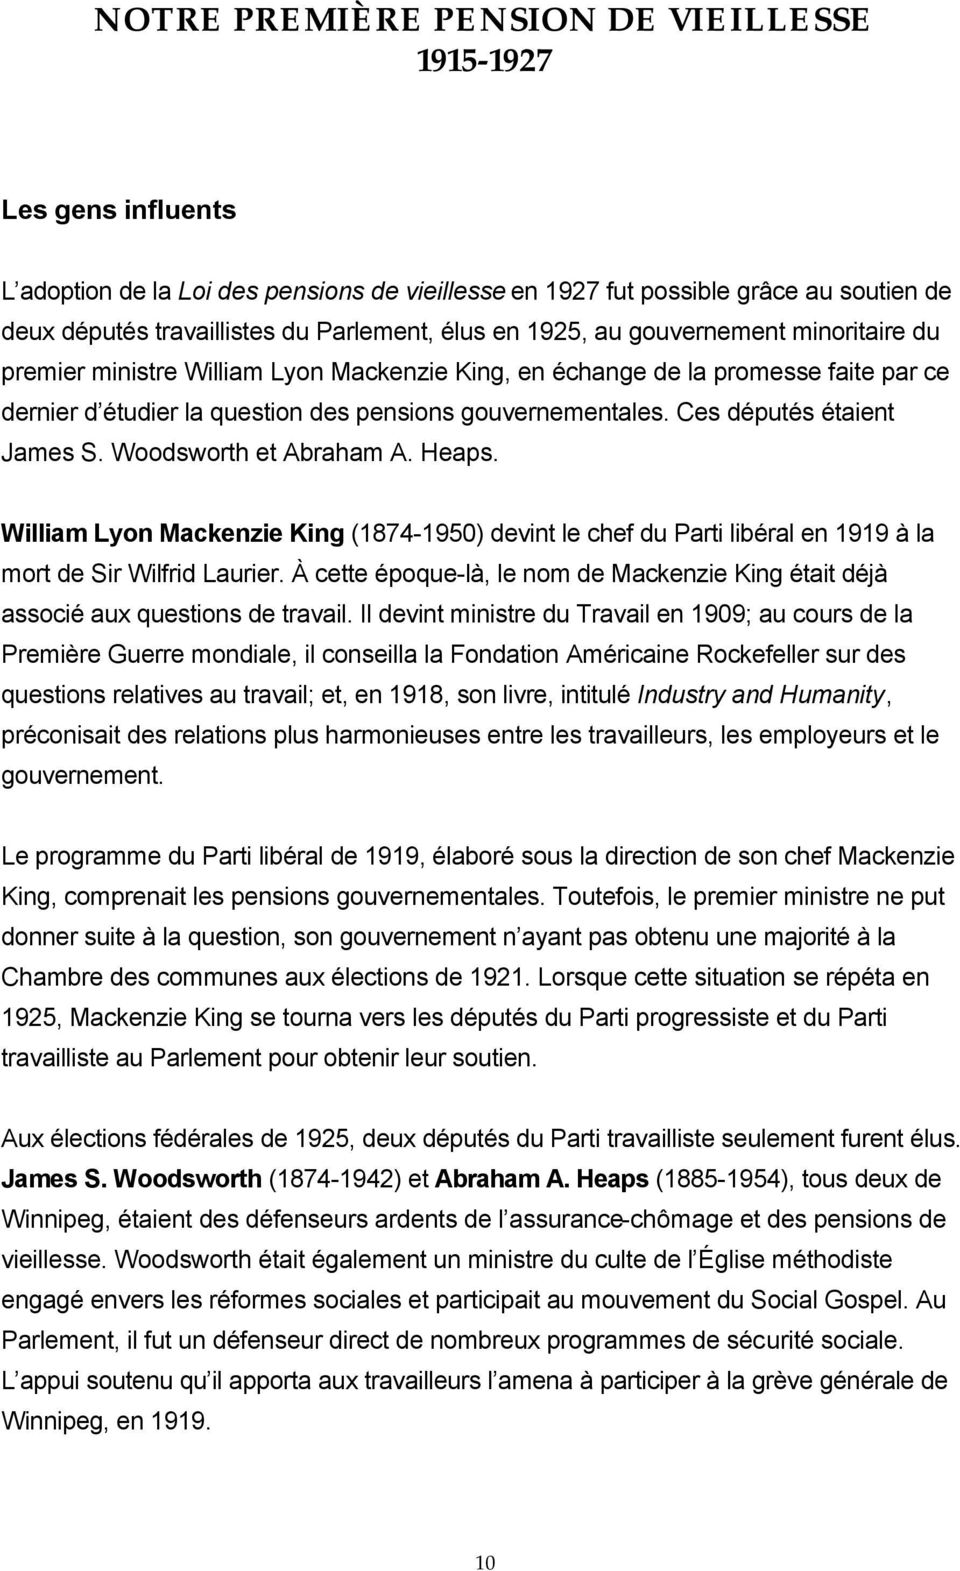 Heaps. William Lyon Mackenzie King (1874-1950) devint le chef du Parti libéral en 1919 à la mort de Sir Wilfrid Laurier.